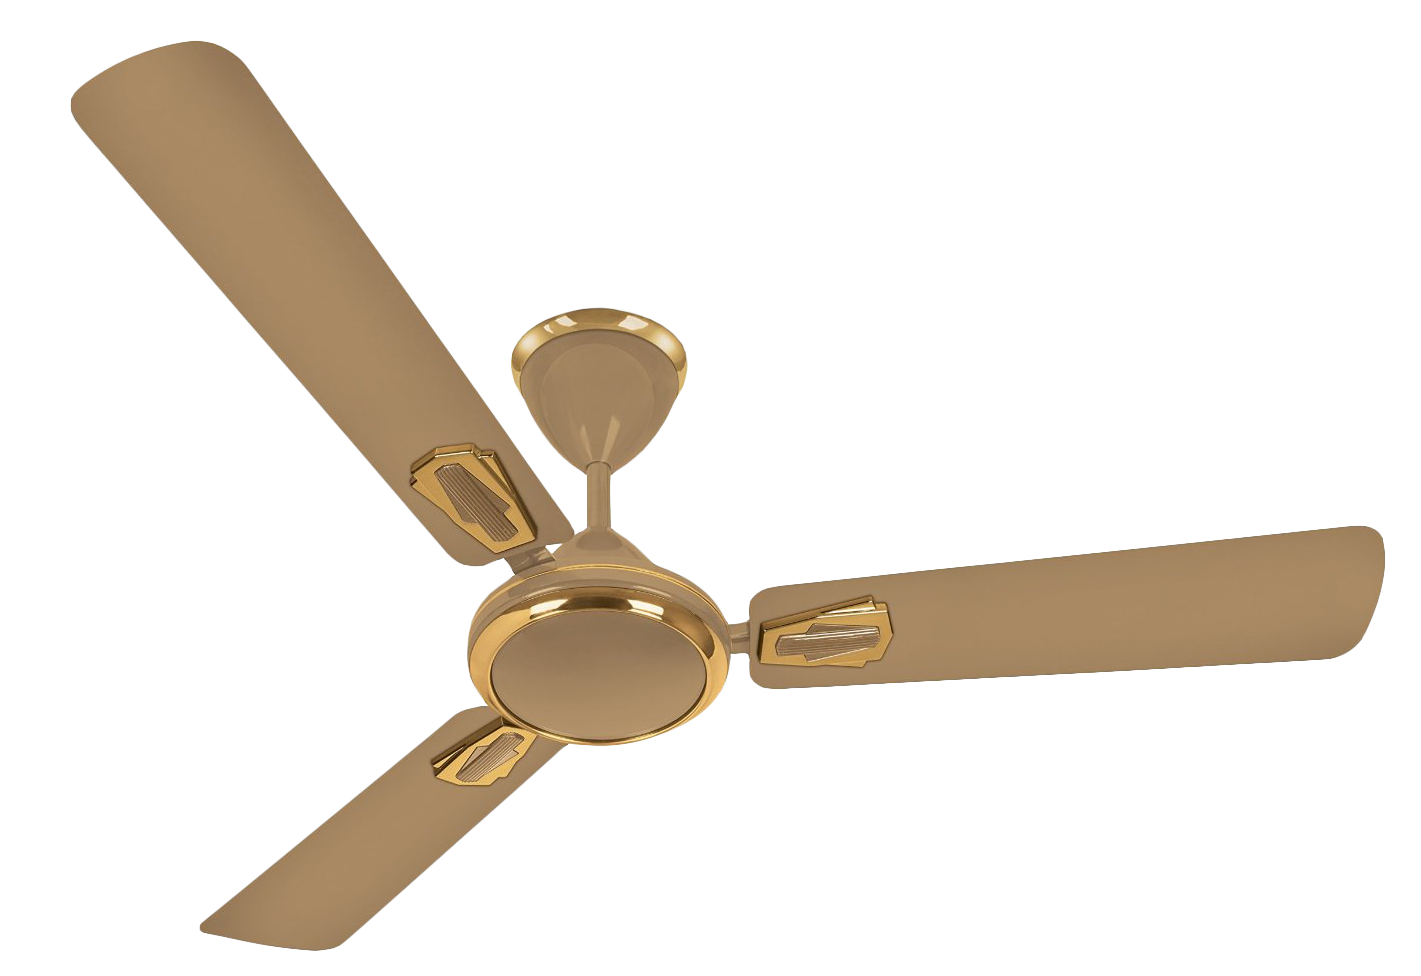 High Speed Ceiling Fan PNG Image   PurePNG | Free Transparent CC0 PNG Image  Library